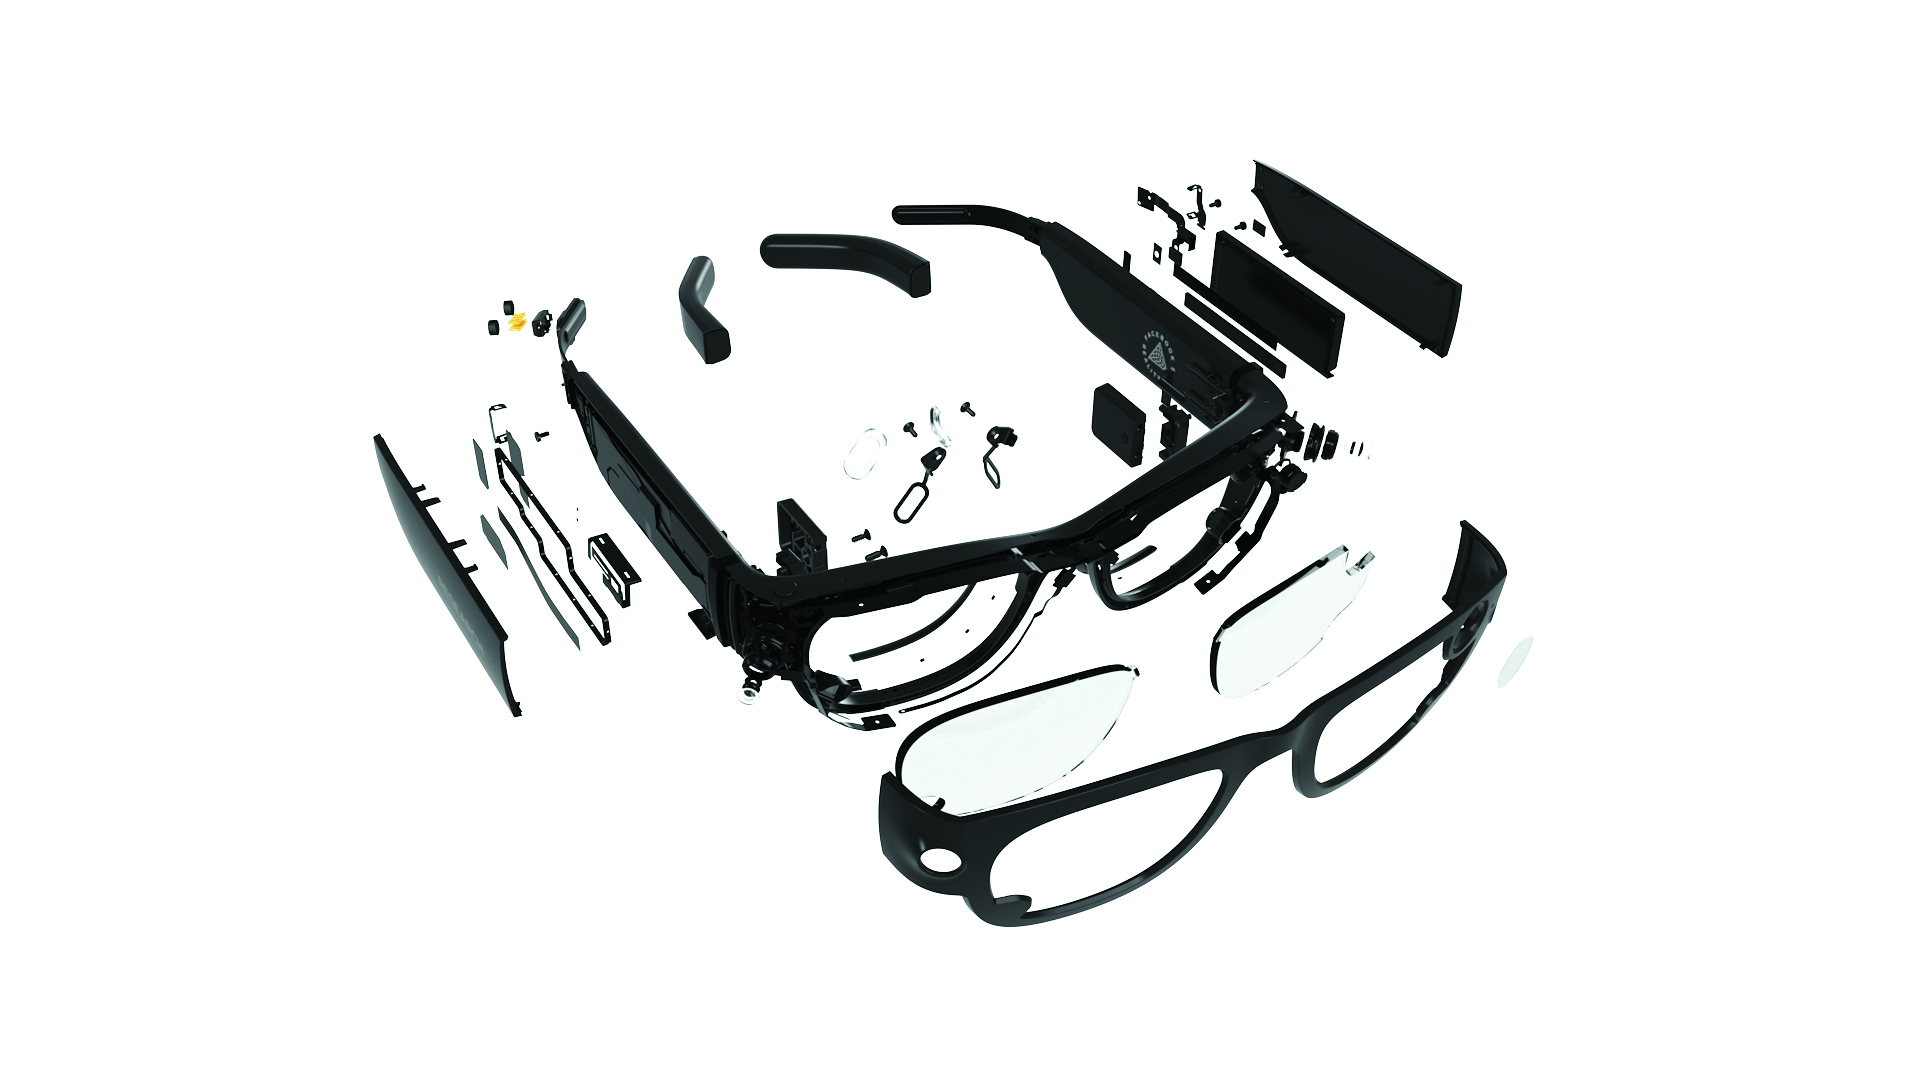 Project Aria glasses deconstructed to show each part